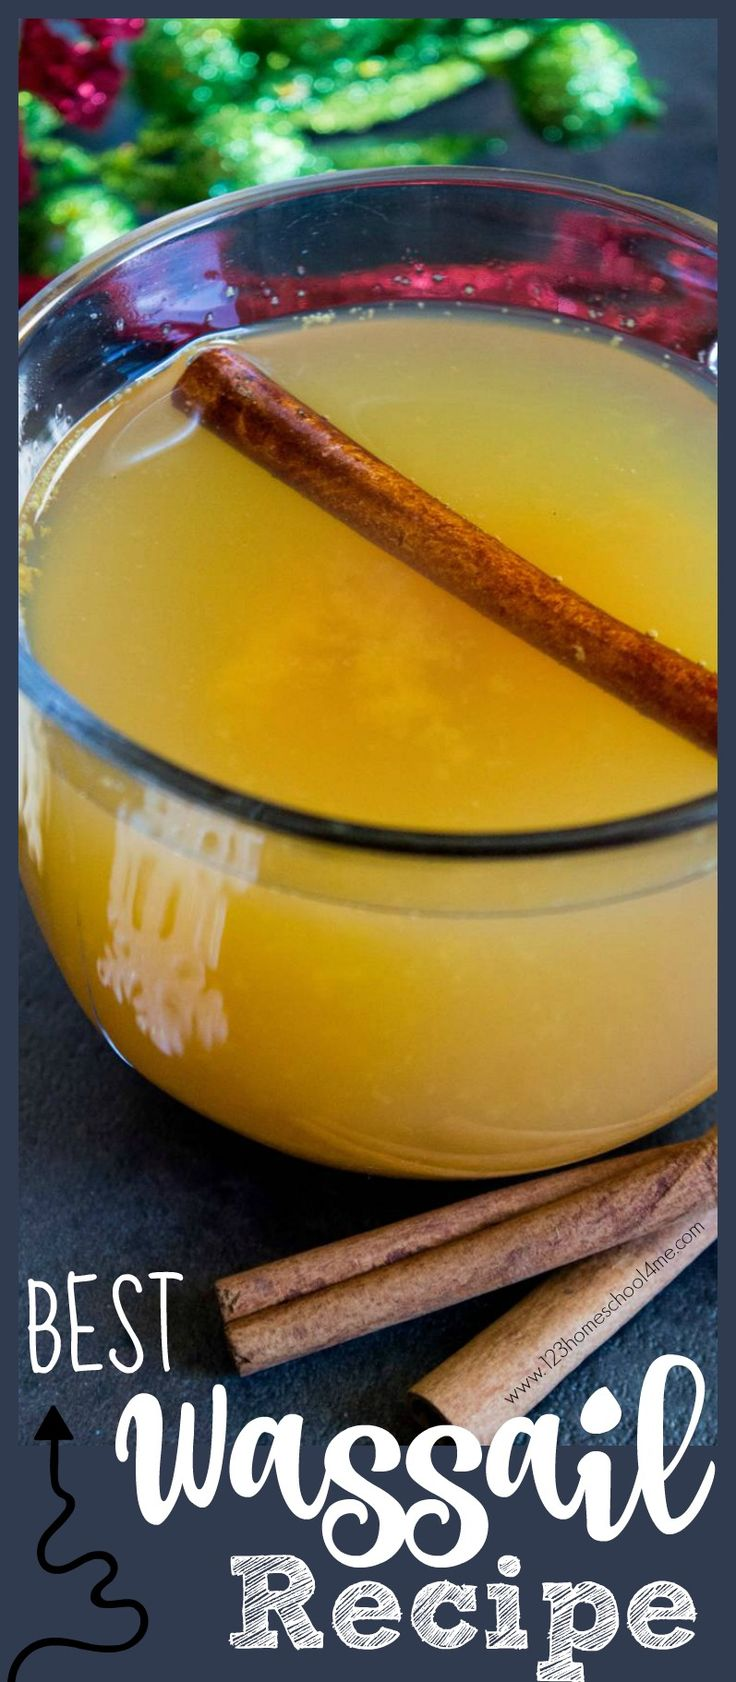 Hands down this is the BEST Wassail Recipe! Not only is it super easy, you can make it in the crockpot, and it is a great Christmas drinks for kids. This hot apple cider based wassail recipe will make your home smell like Christmas. This is our traditional, family favorite holiday recipe we make every single year! You'll love this as a Christmas recipes breakfast!